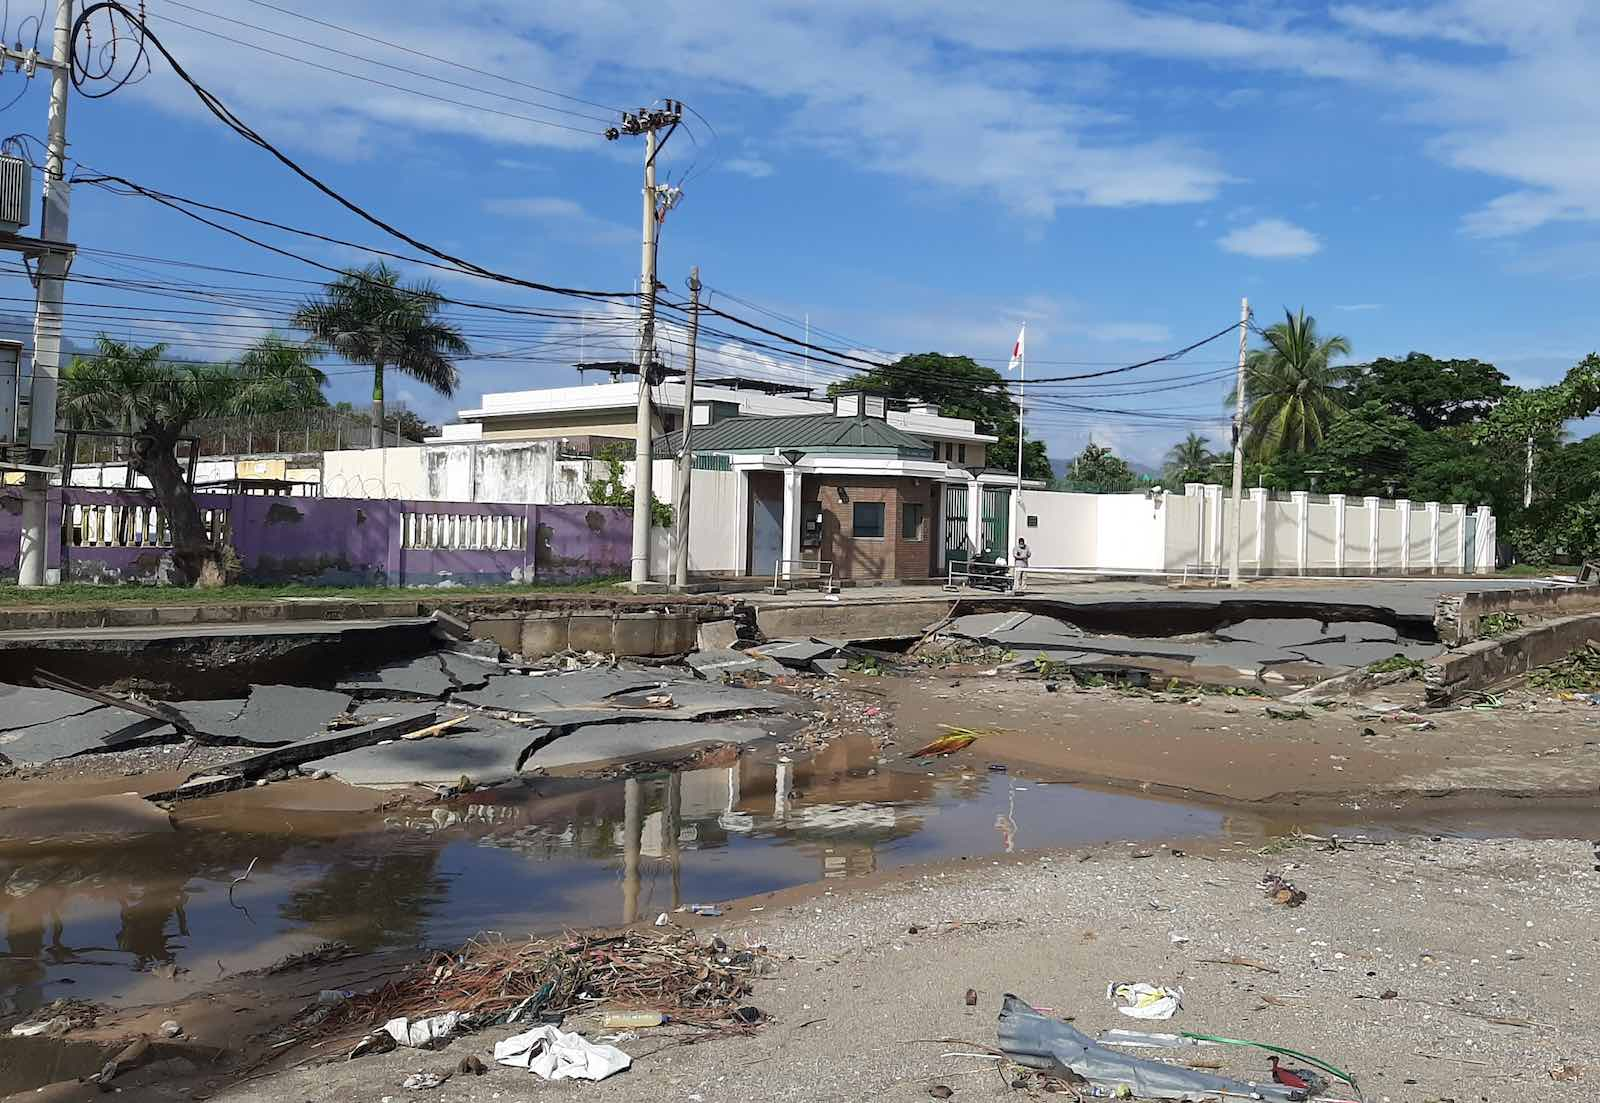 Collapsed road in front of the Embassy of Japan in Dili after recent floods (Author provided)